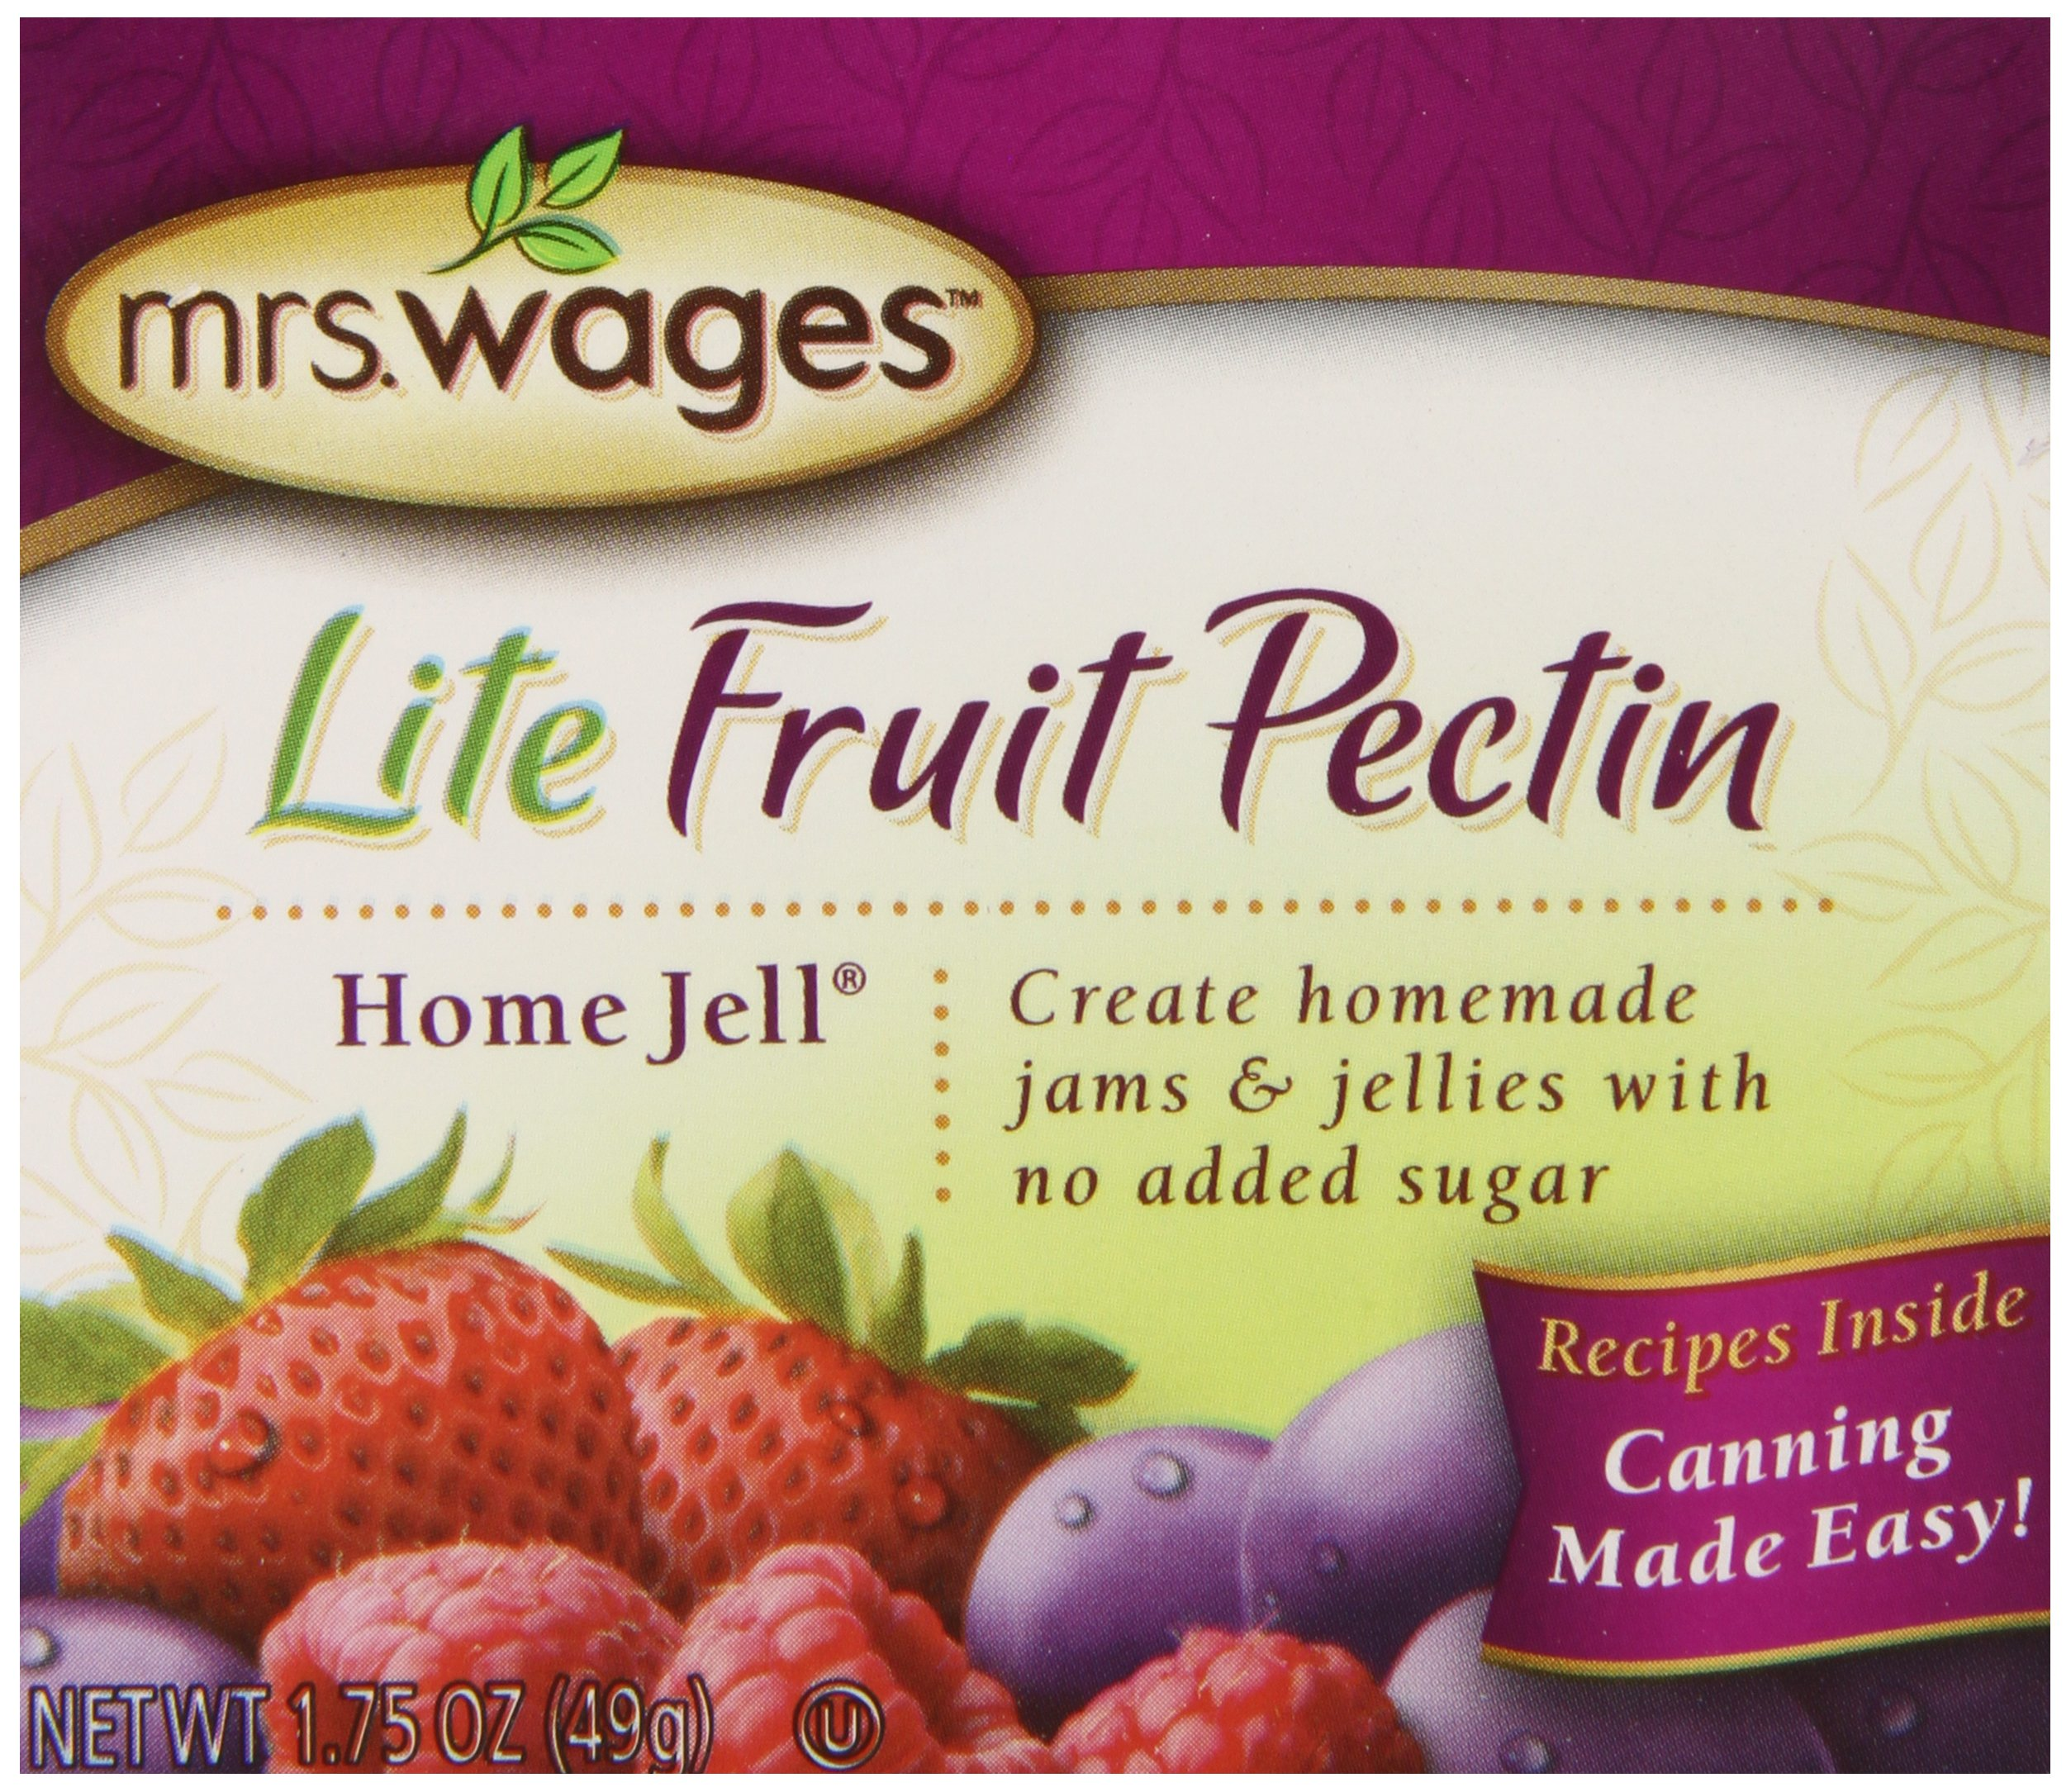 Mrs. Wages Lite Home Jell Fruit Pectin, 1.75-Ounce Pouches (Pack of 12) by Mrs. Wages (Image #1)